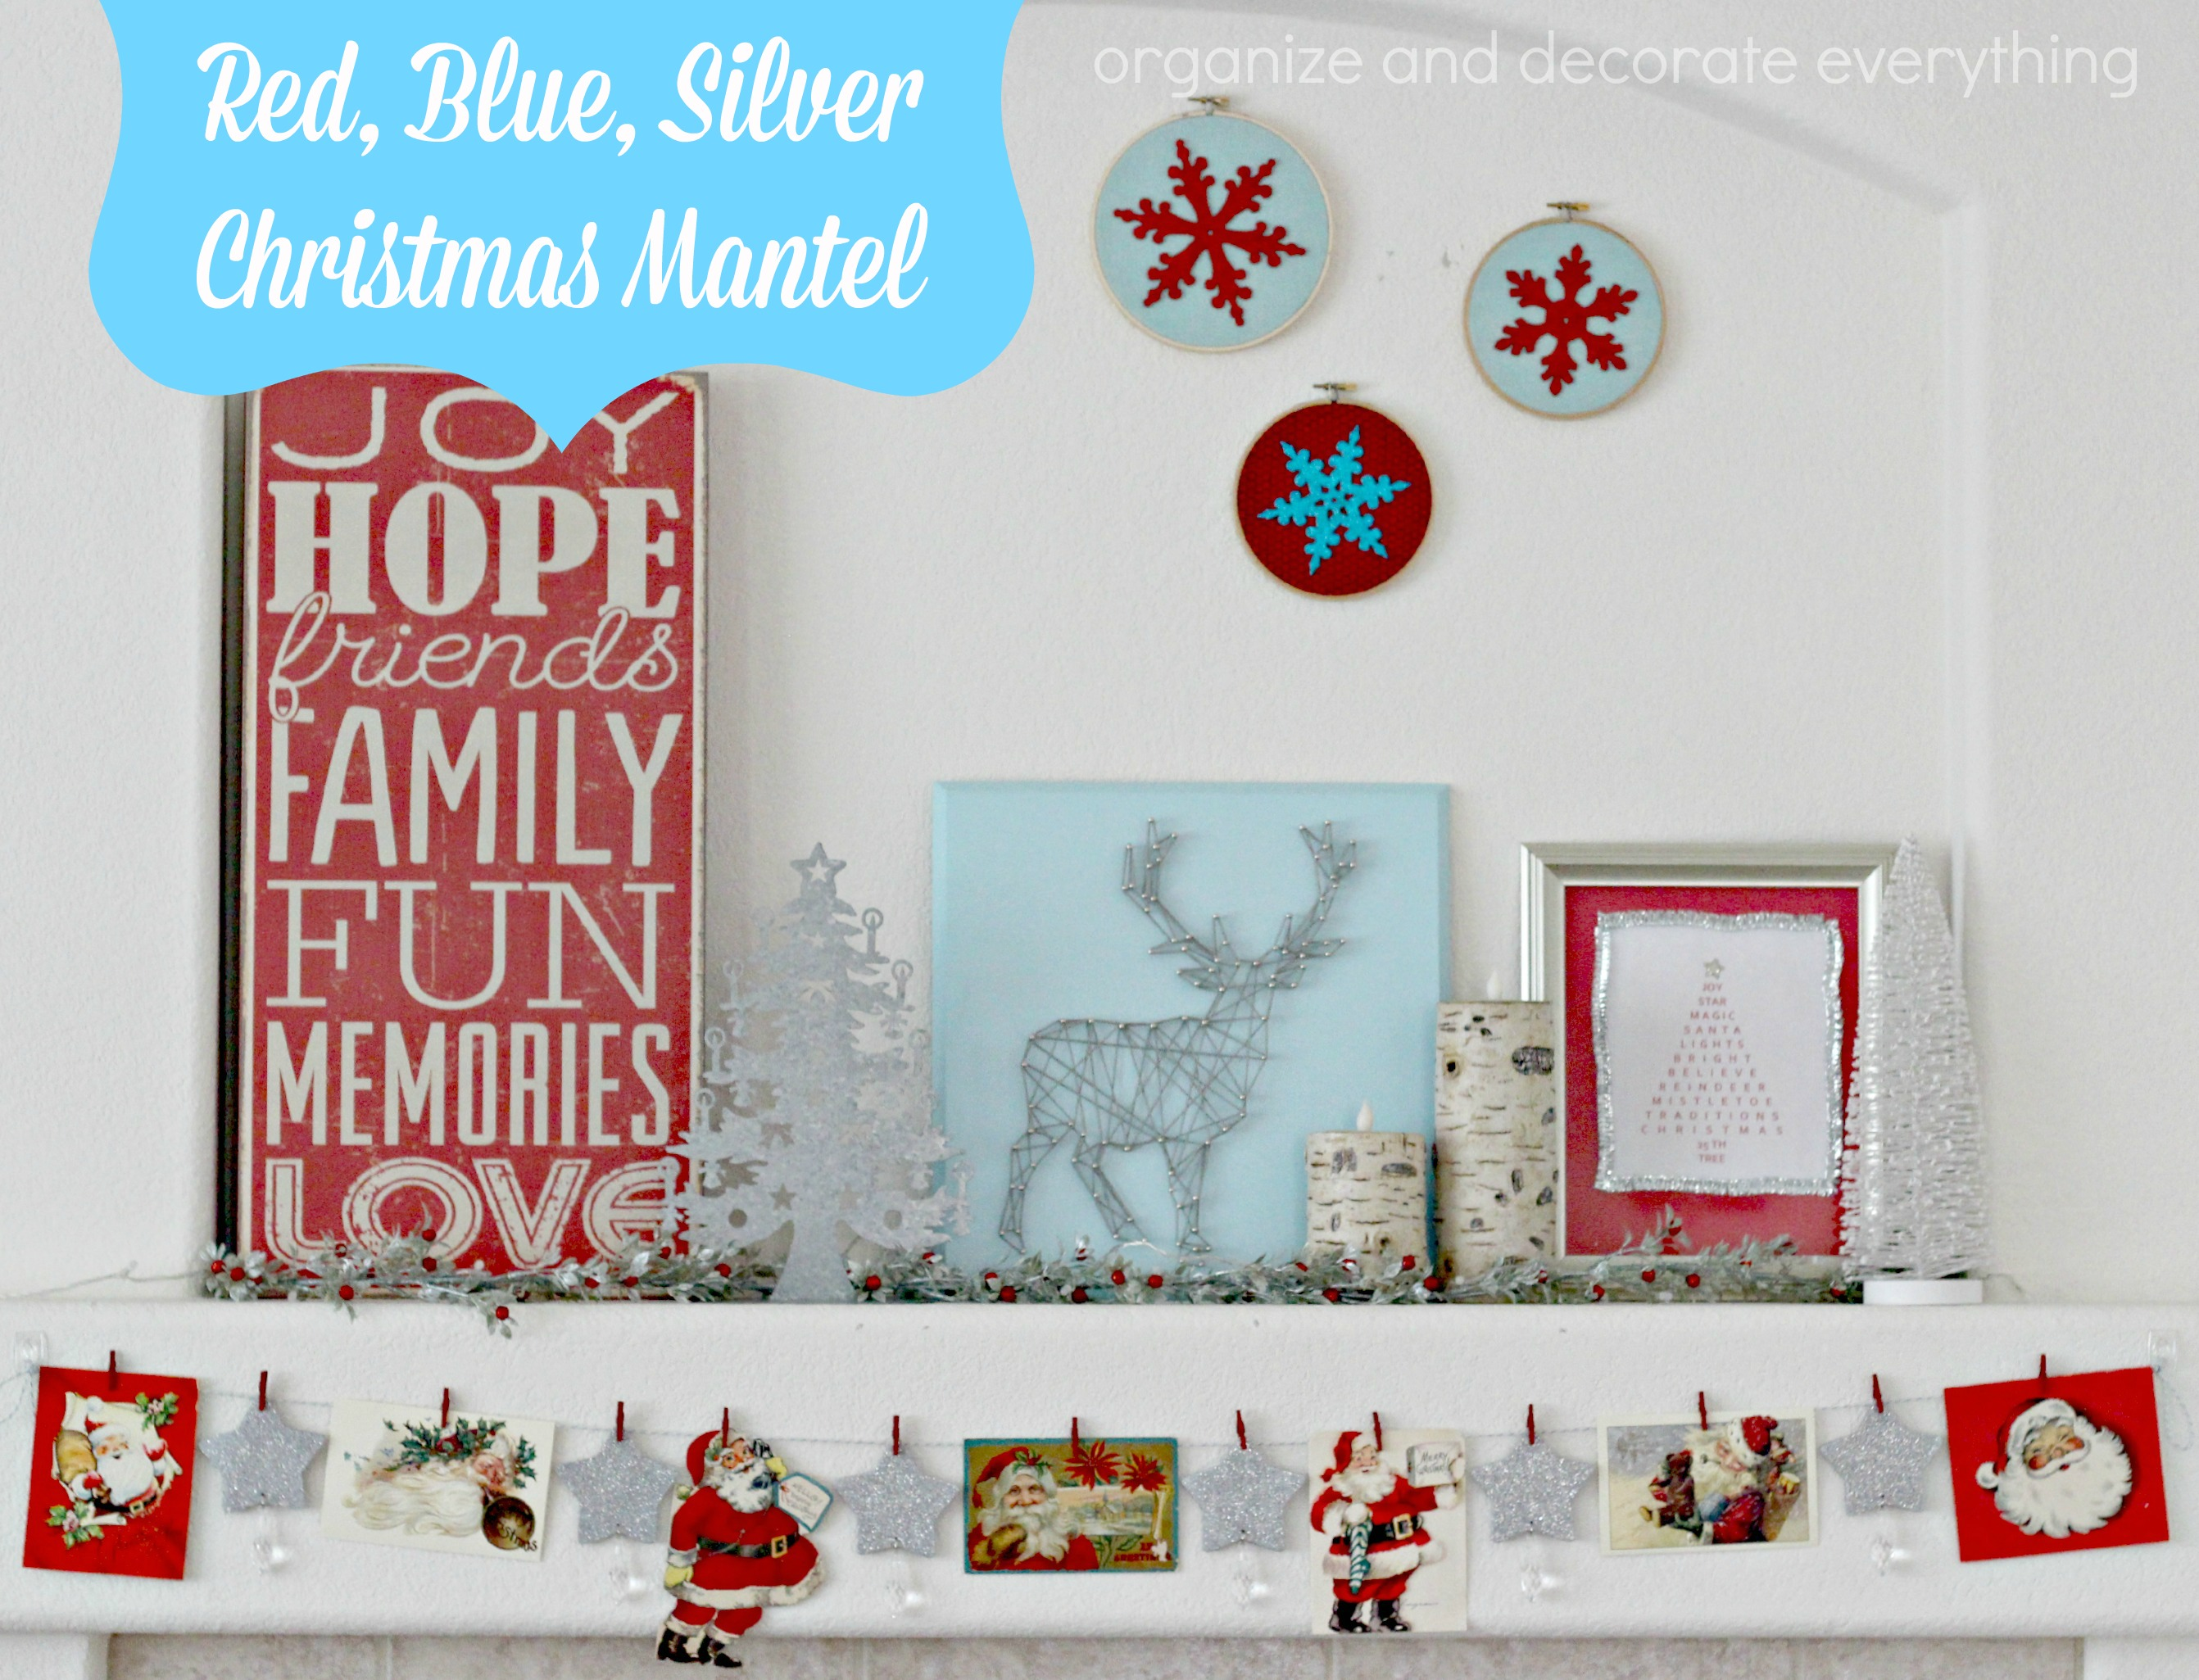 red blue silver chrsitmas mantel organize and decorate everything - Teal And Red Christmas Decorations